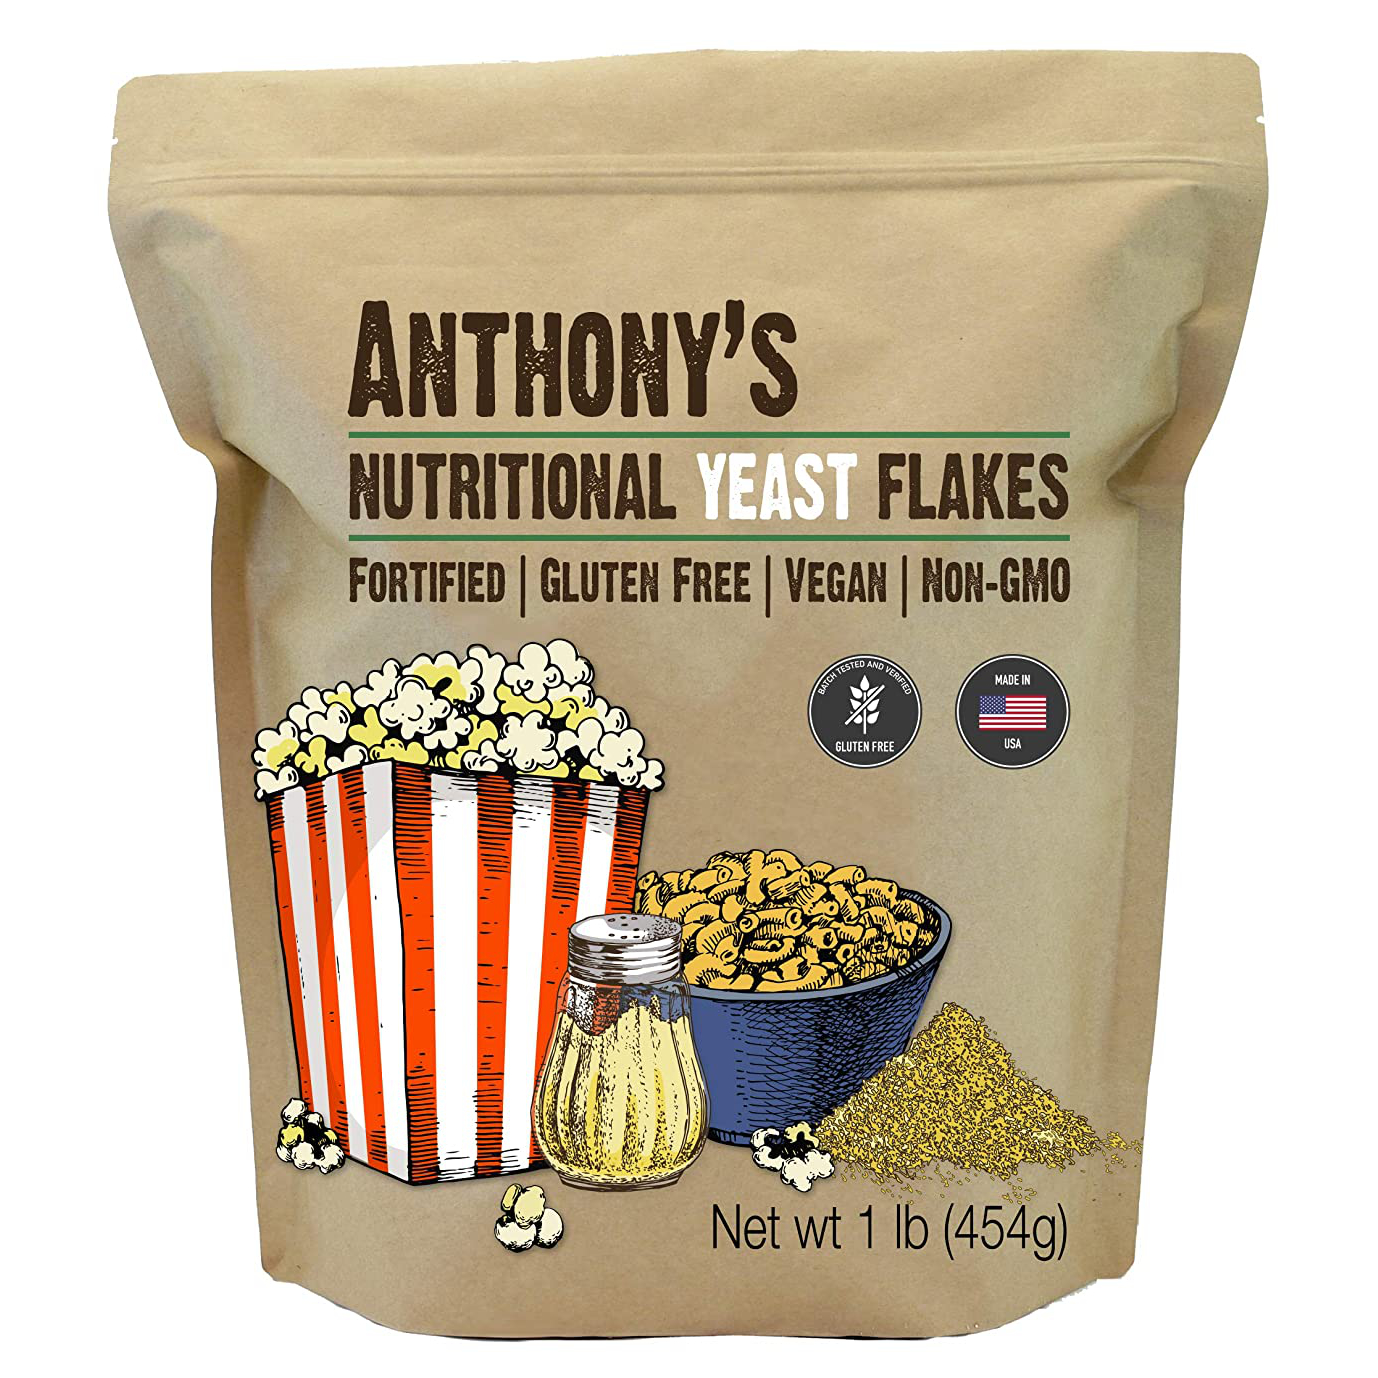 Anthony's Nutritional Yeast Flakes make a great vegan substitute for cheese.